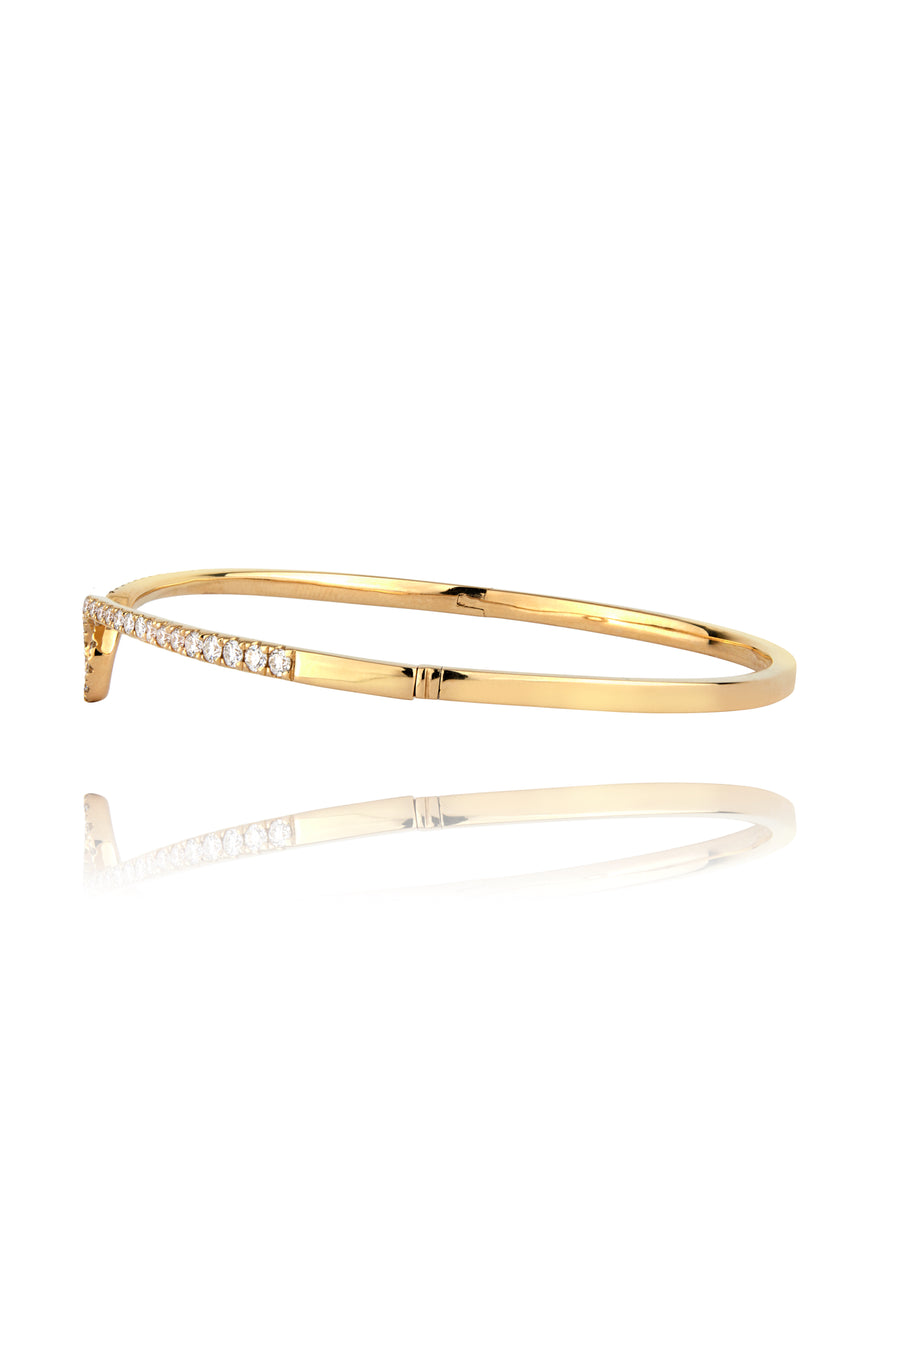 Lark & Berry's Modernist Diamond Pave Hinged Bangle with 14K yellow gold and lab-created diamonds.